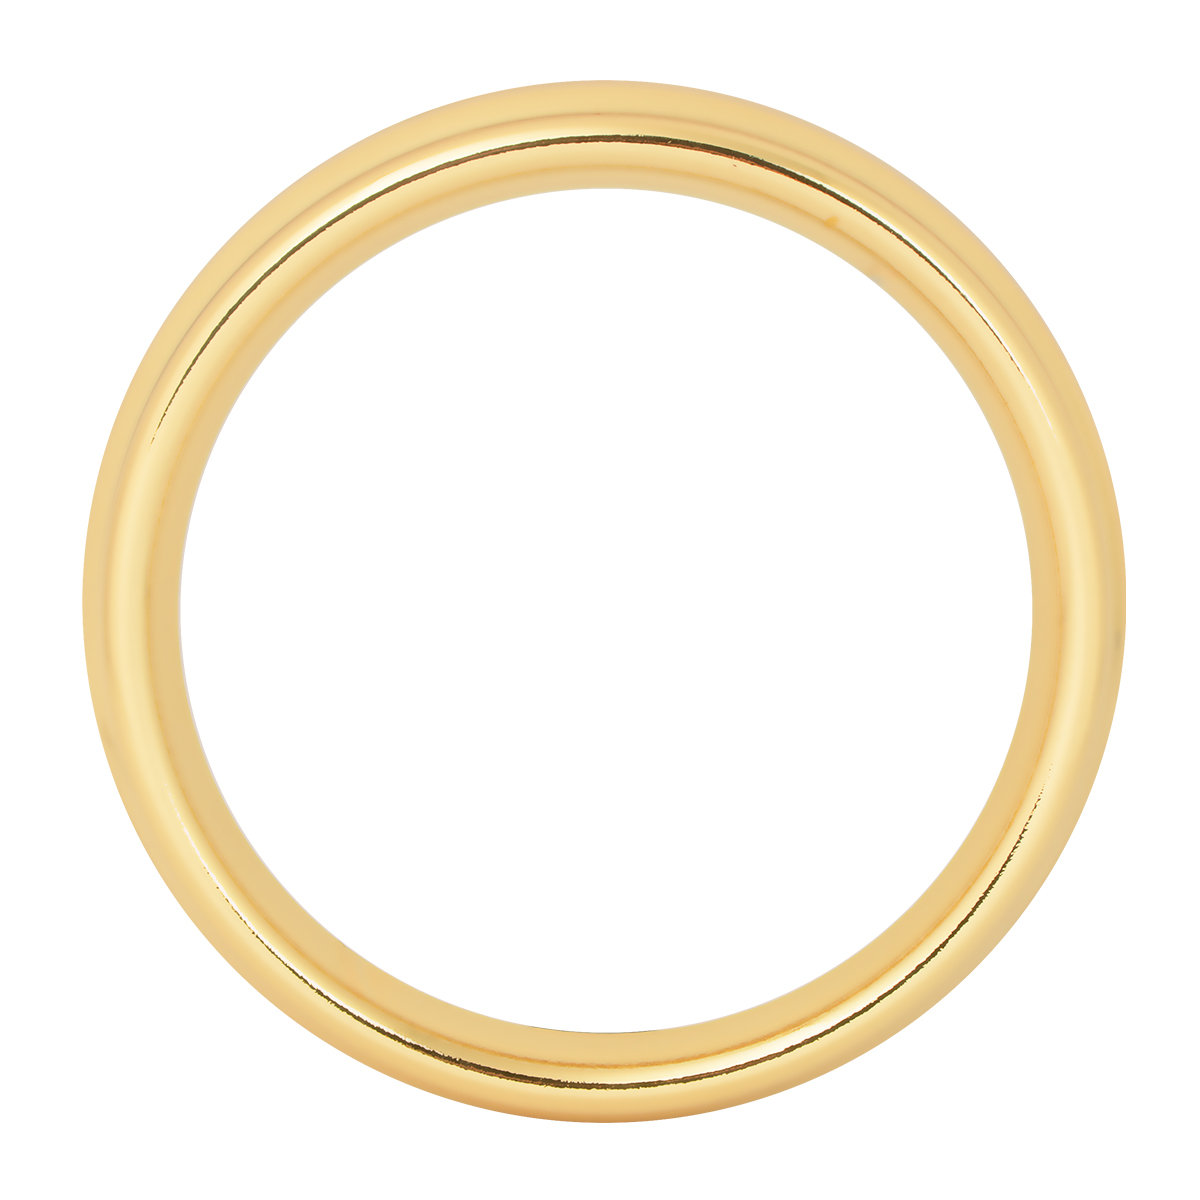 68181 18K Gold Plated Pyrometer Snap-On Gauge Cover for KW